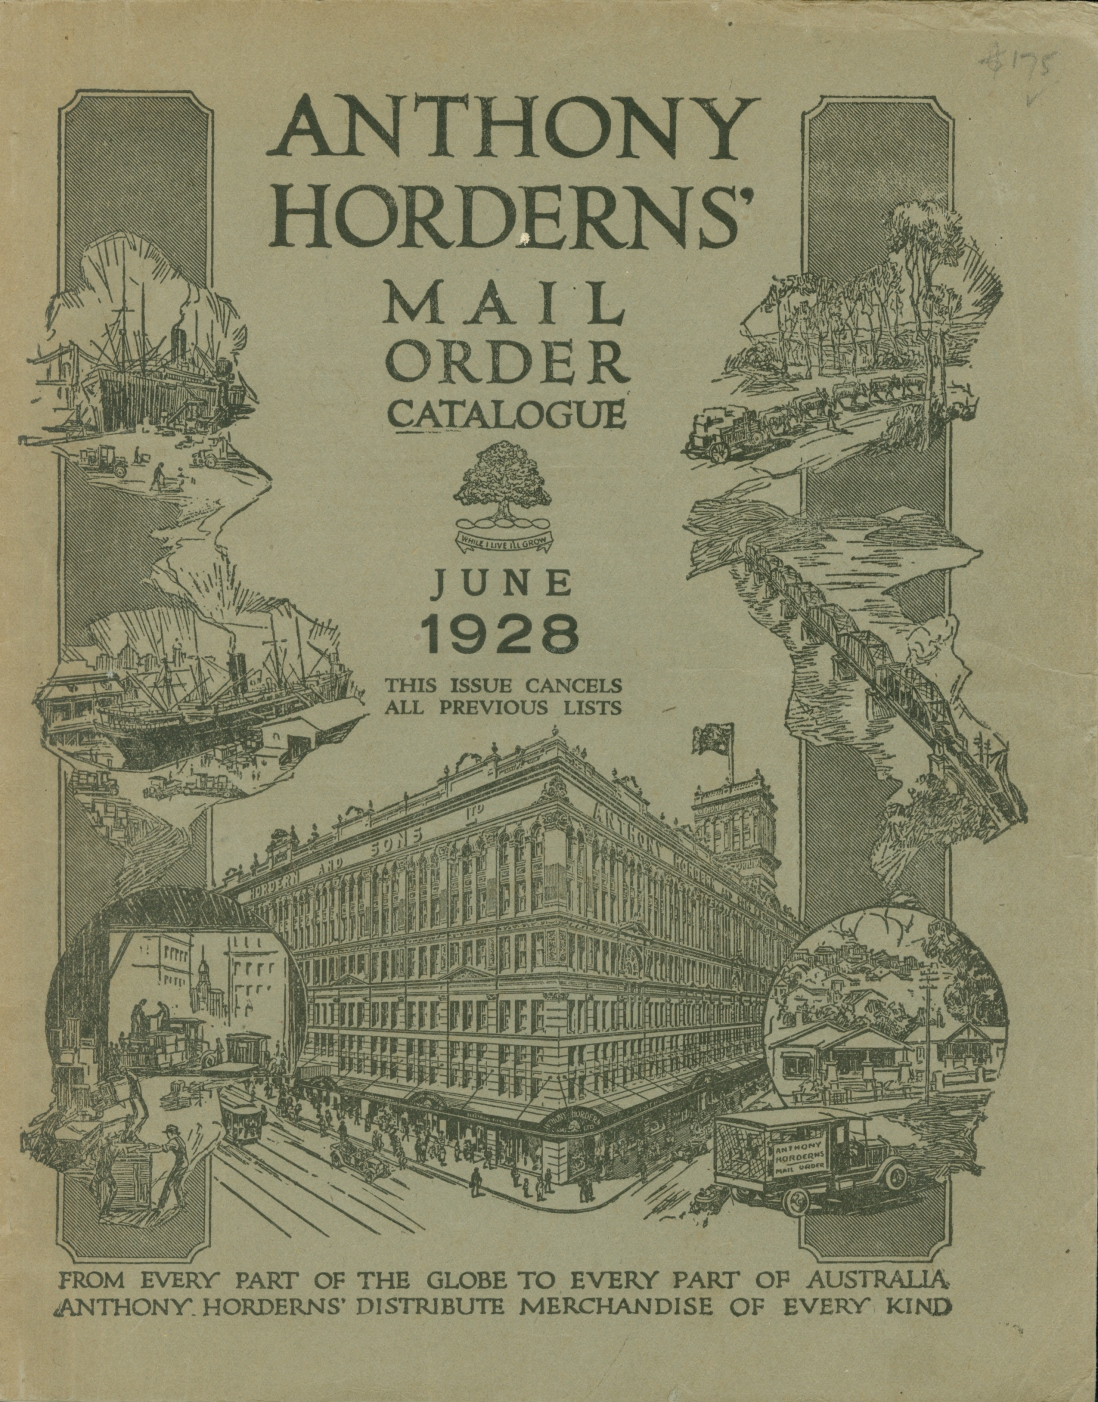 Page from a catalogue showing the outside of Anthony Hordern & Sons department store building